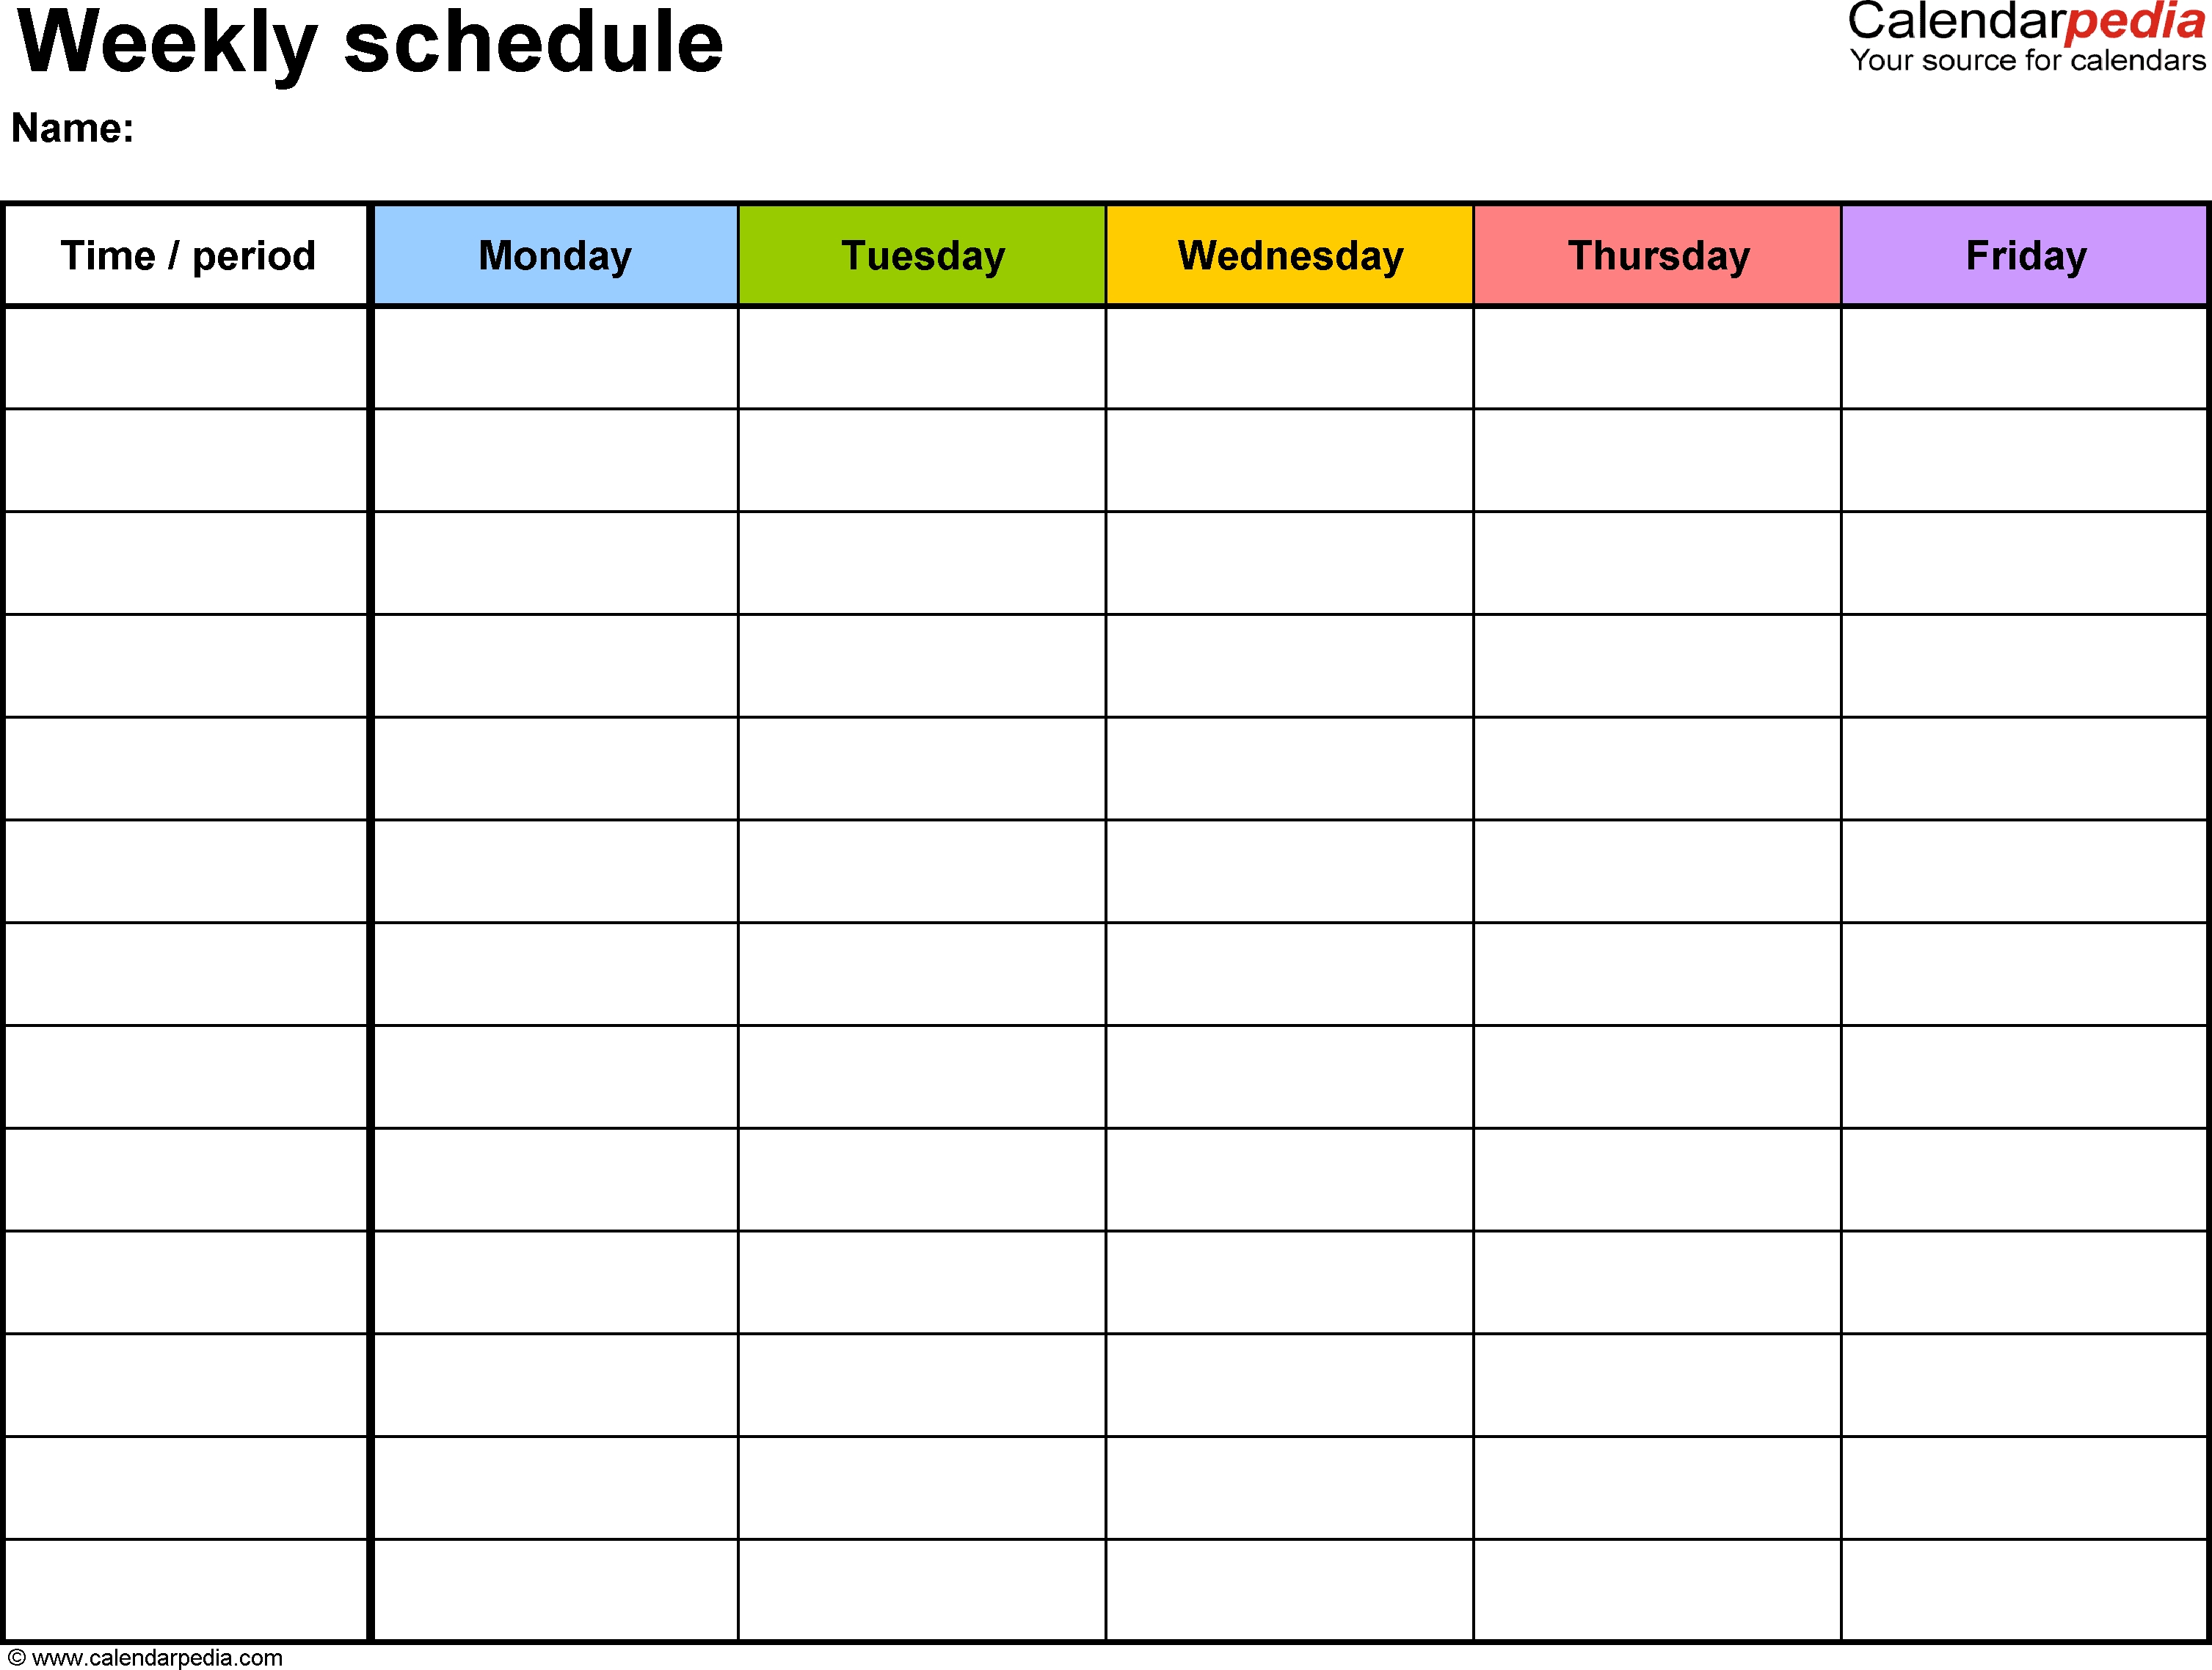 Free Weekly Schedule Templates For Excel - 18 Templates with Planning Monthly Calendar Excel Spreadsheet